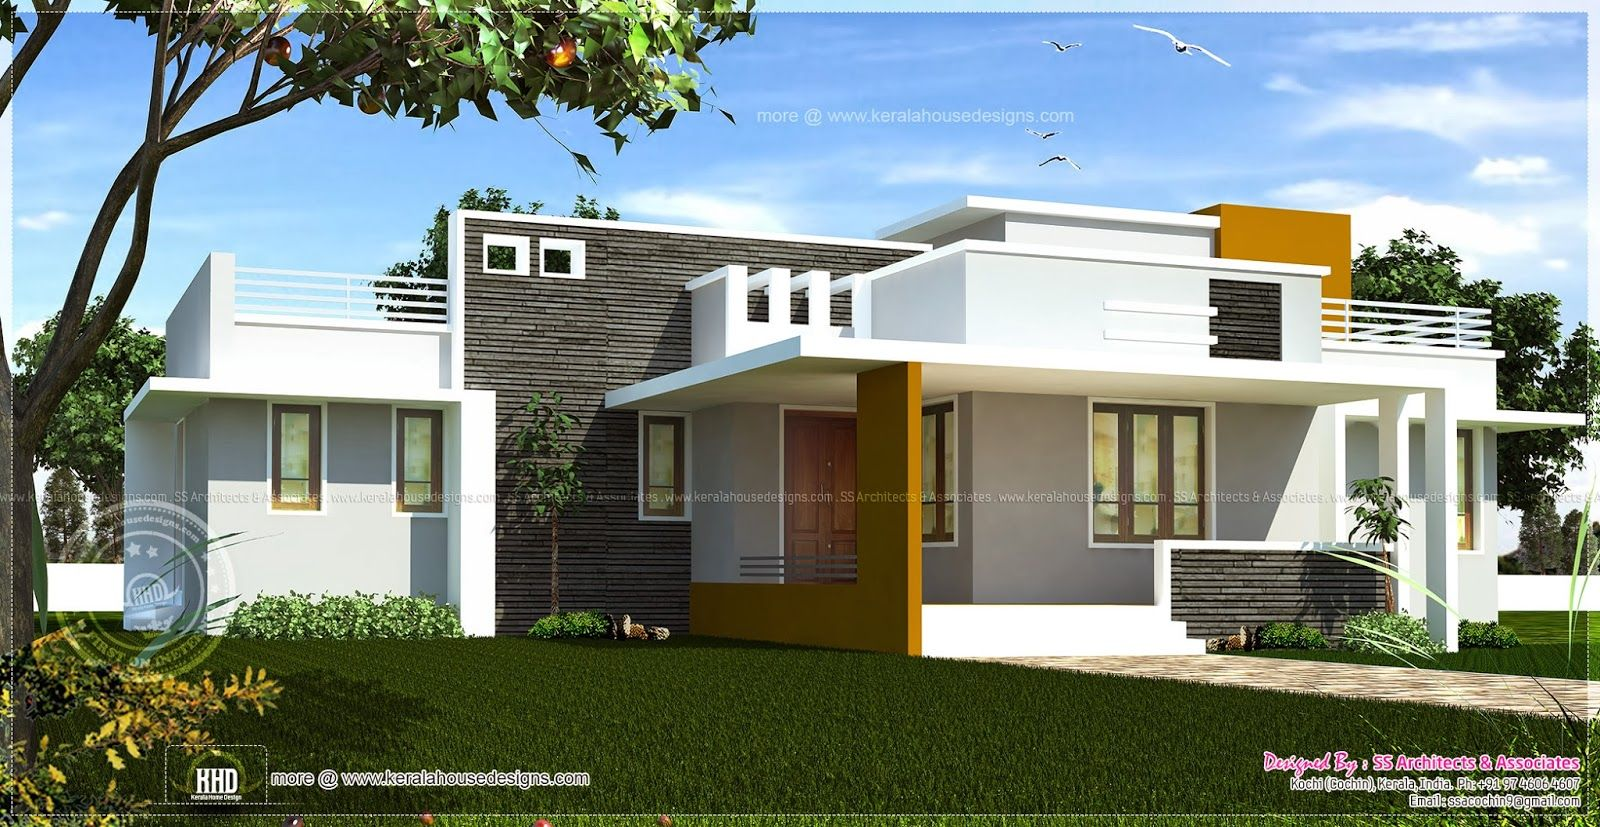 Excellent single home designs single floor contemporary for Single home design